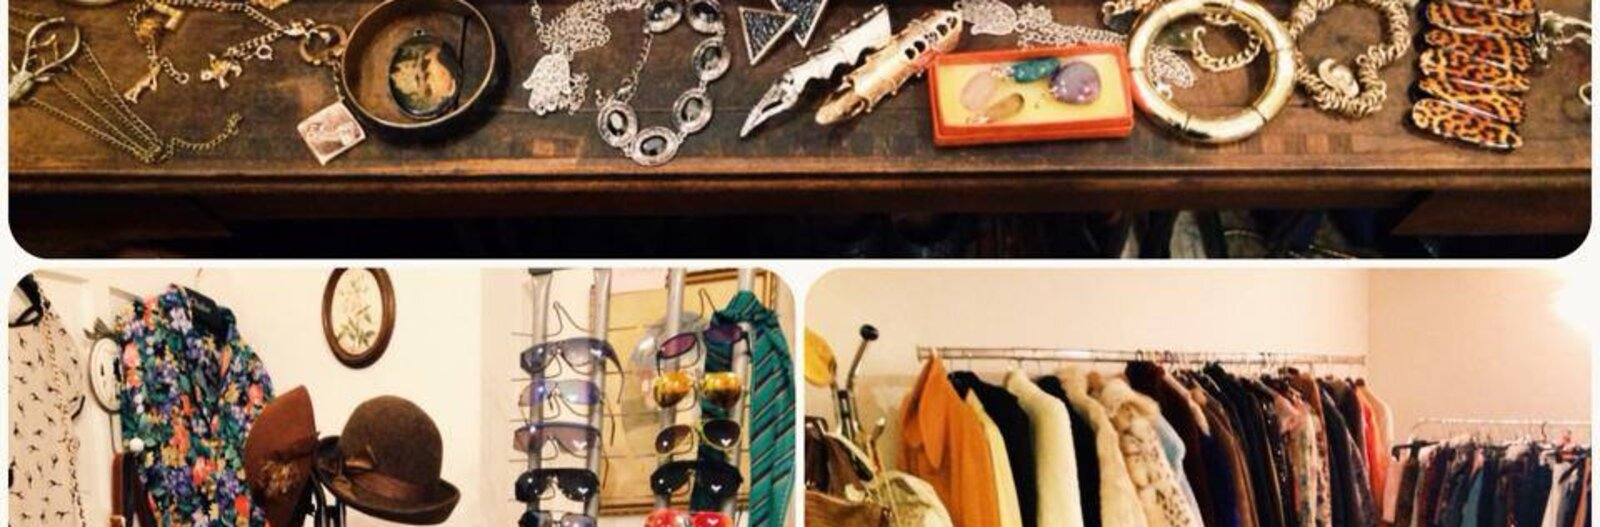 The best second-hand shops and vintage stores in Budapest